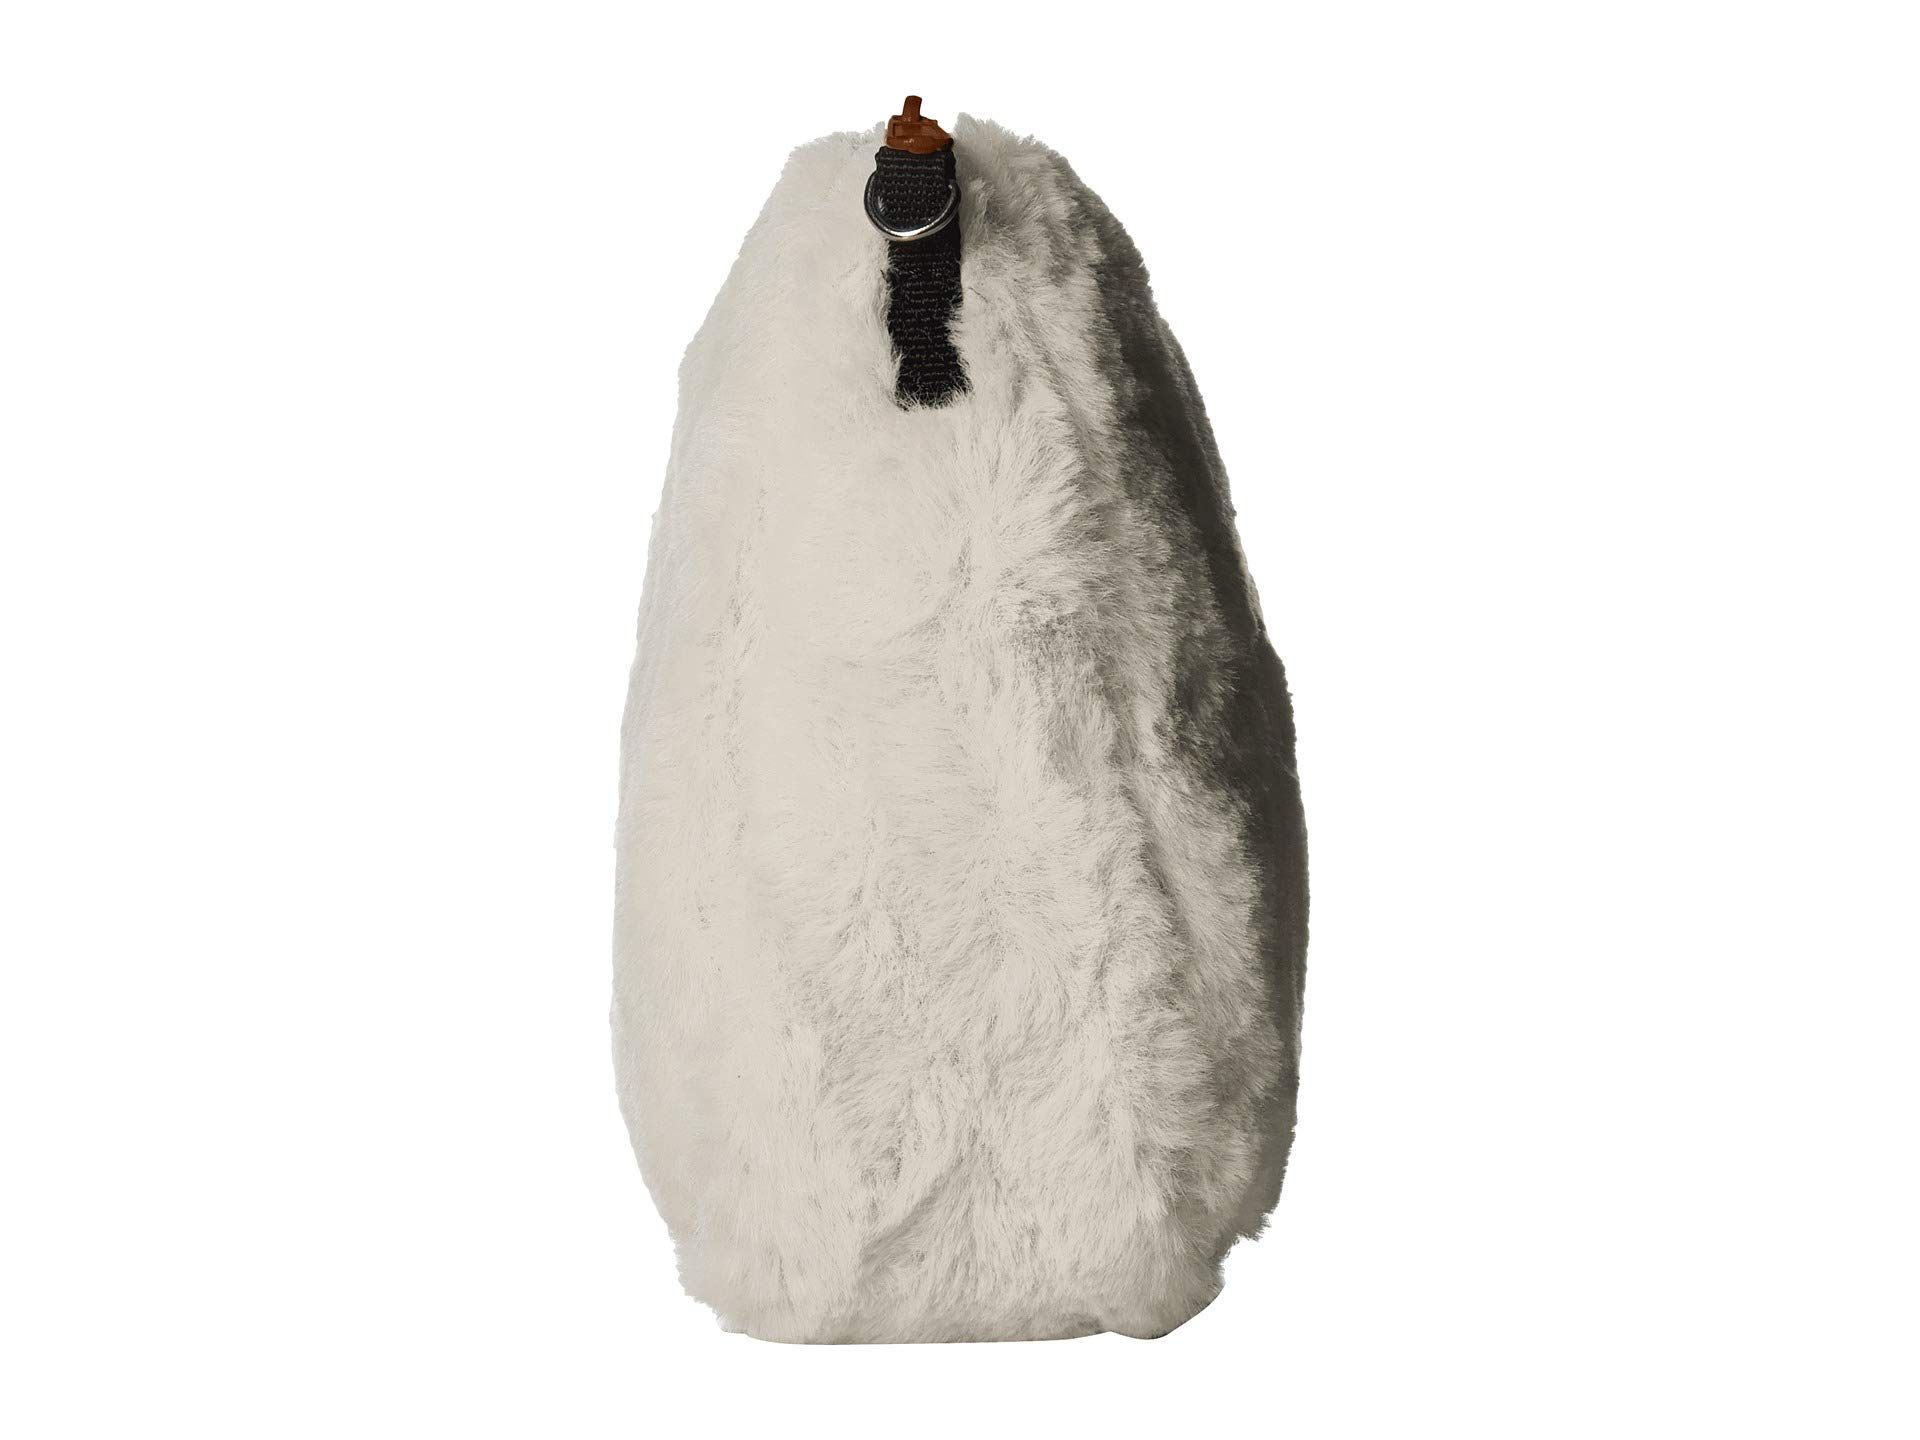 Natural Fluffy Kavu Natural So So Kavu Kavu Fluffy So Fluffy Natural So Kavu So Kavu Fluffy Fluffy Natural AHnAxB